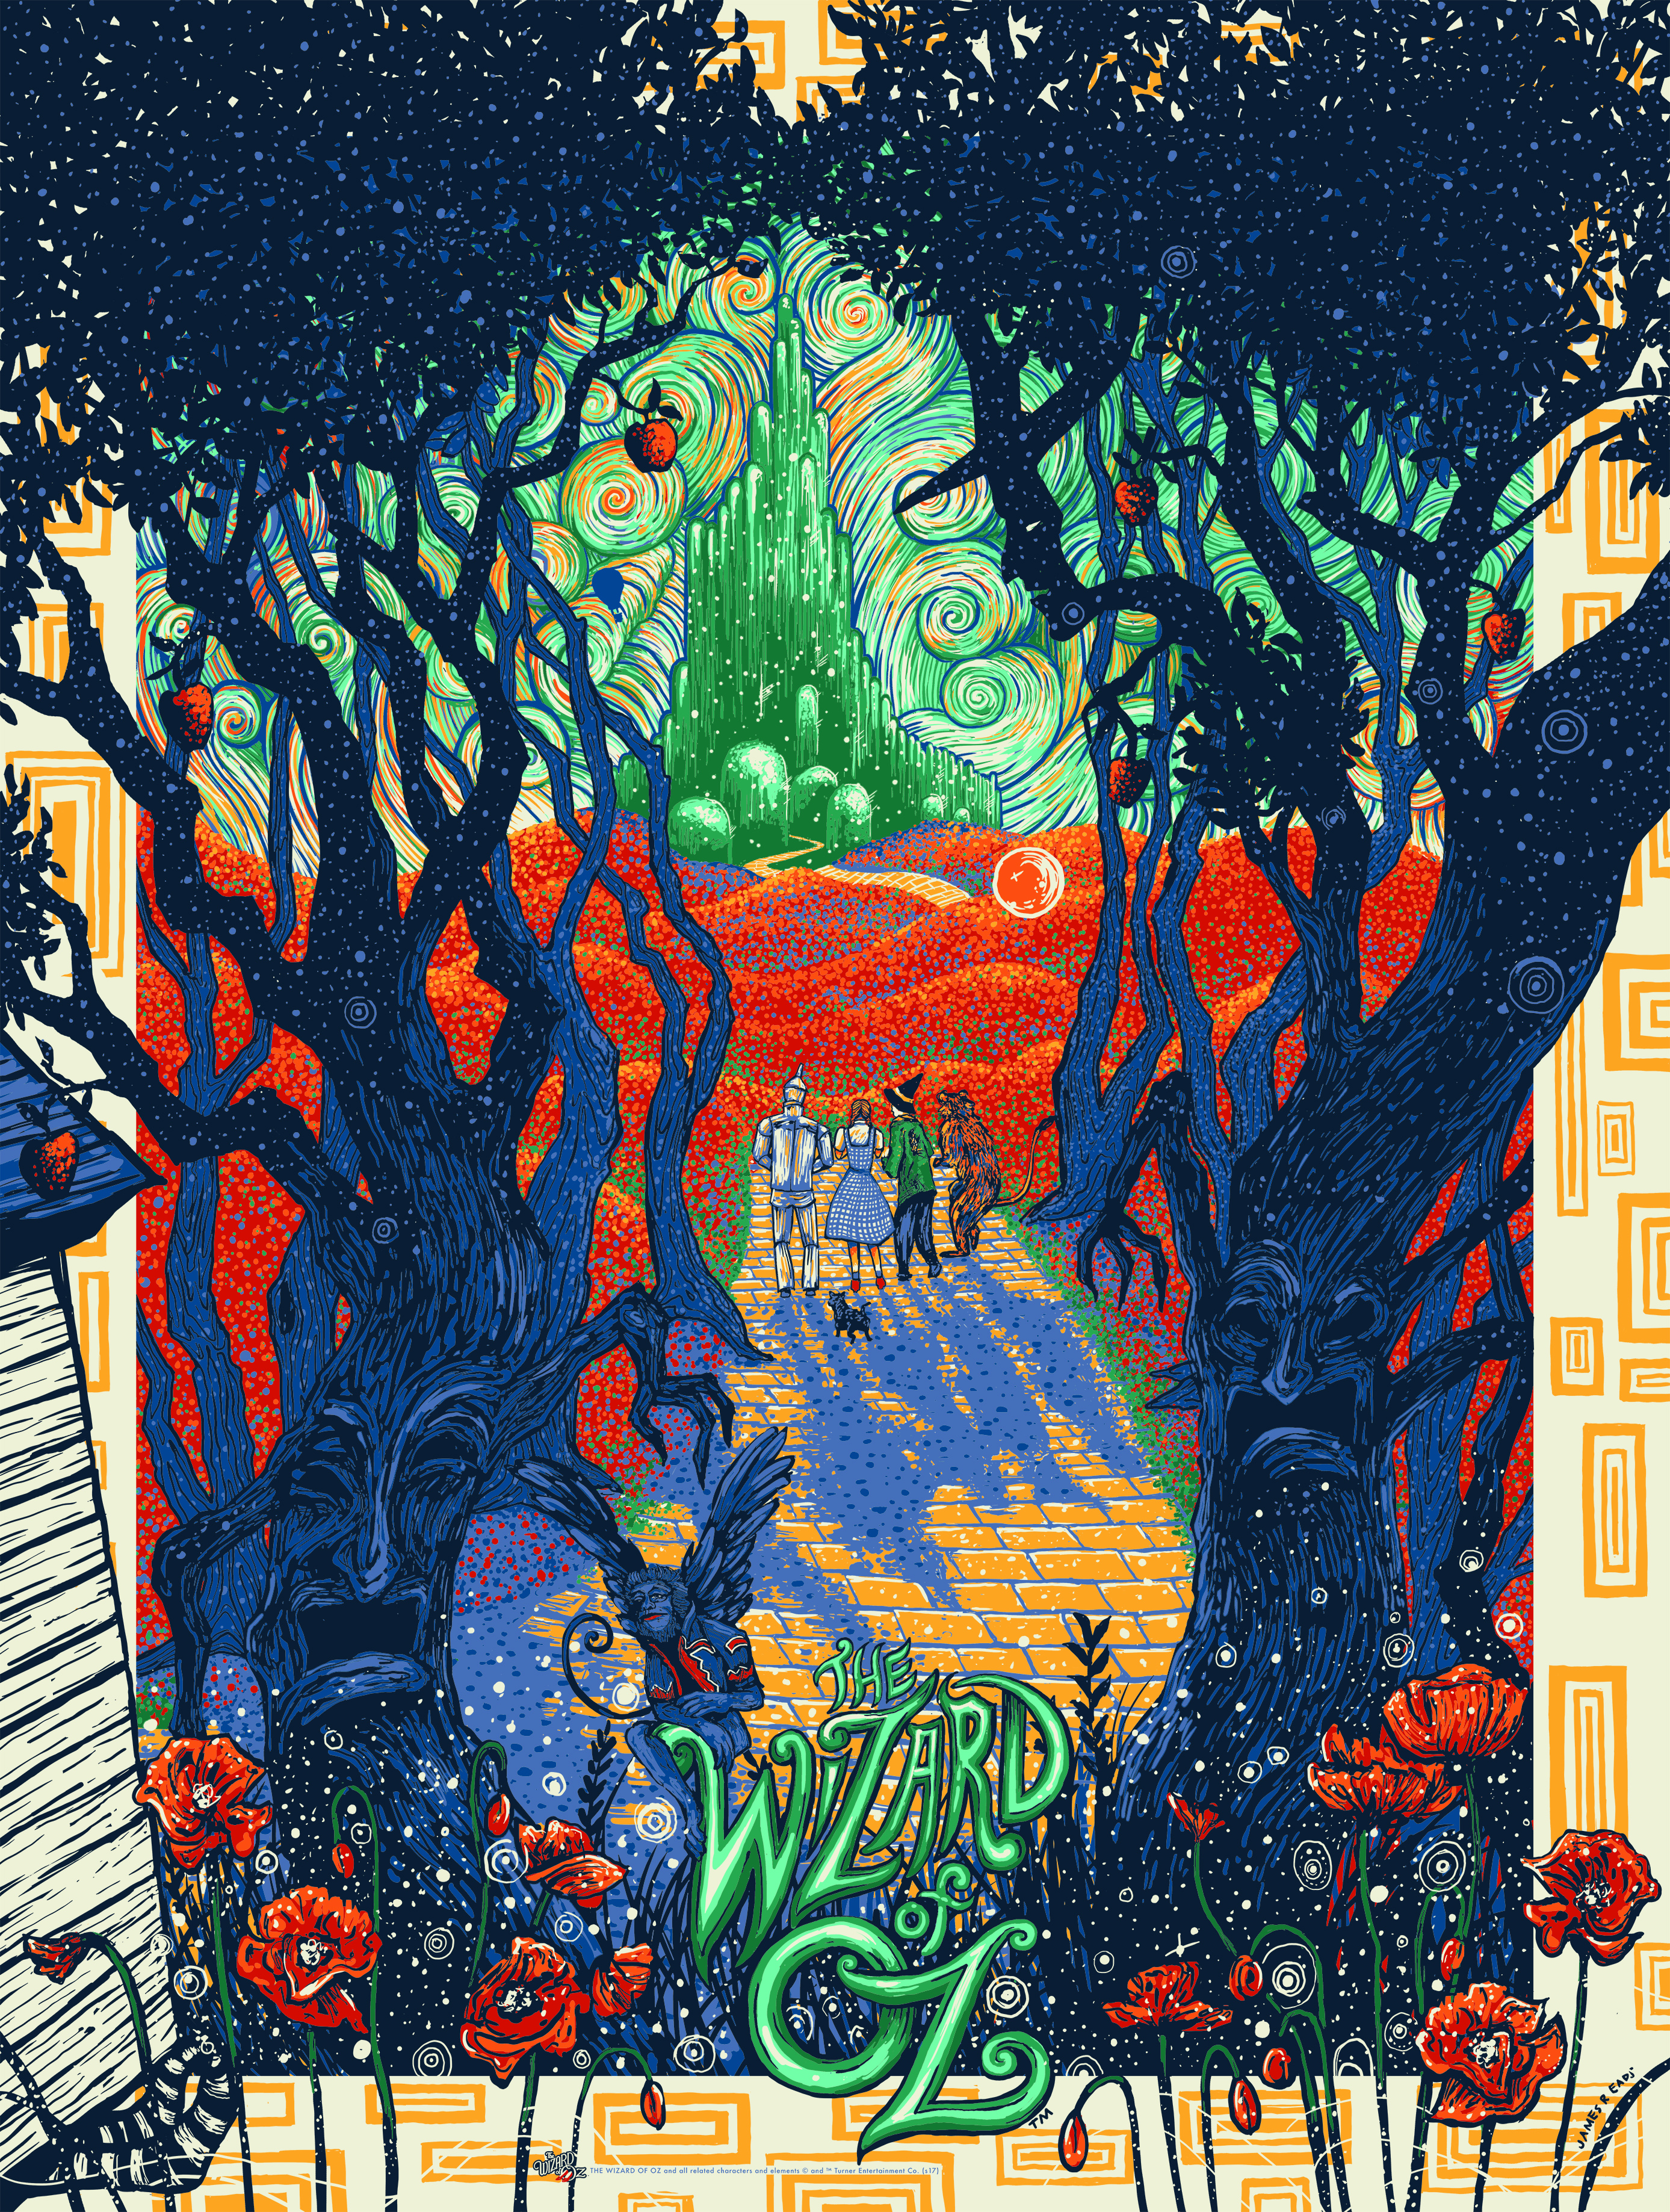 """The Wizard of Oz"" by James R Eads"